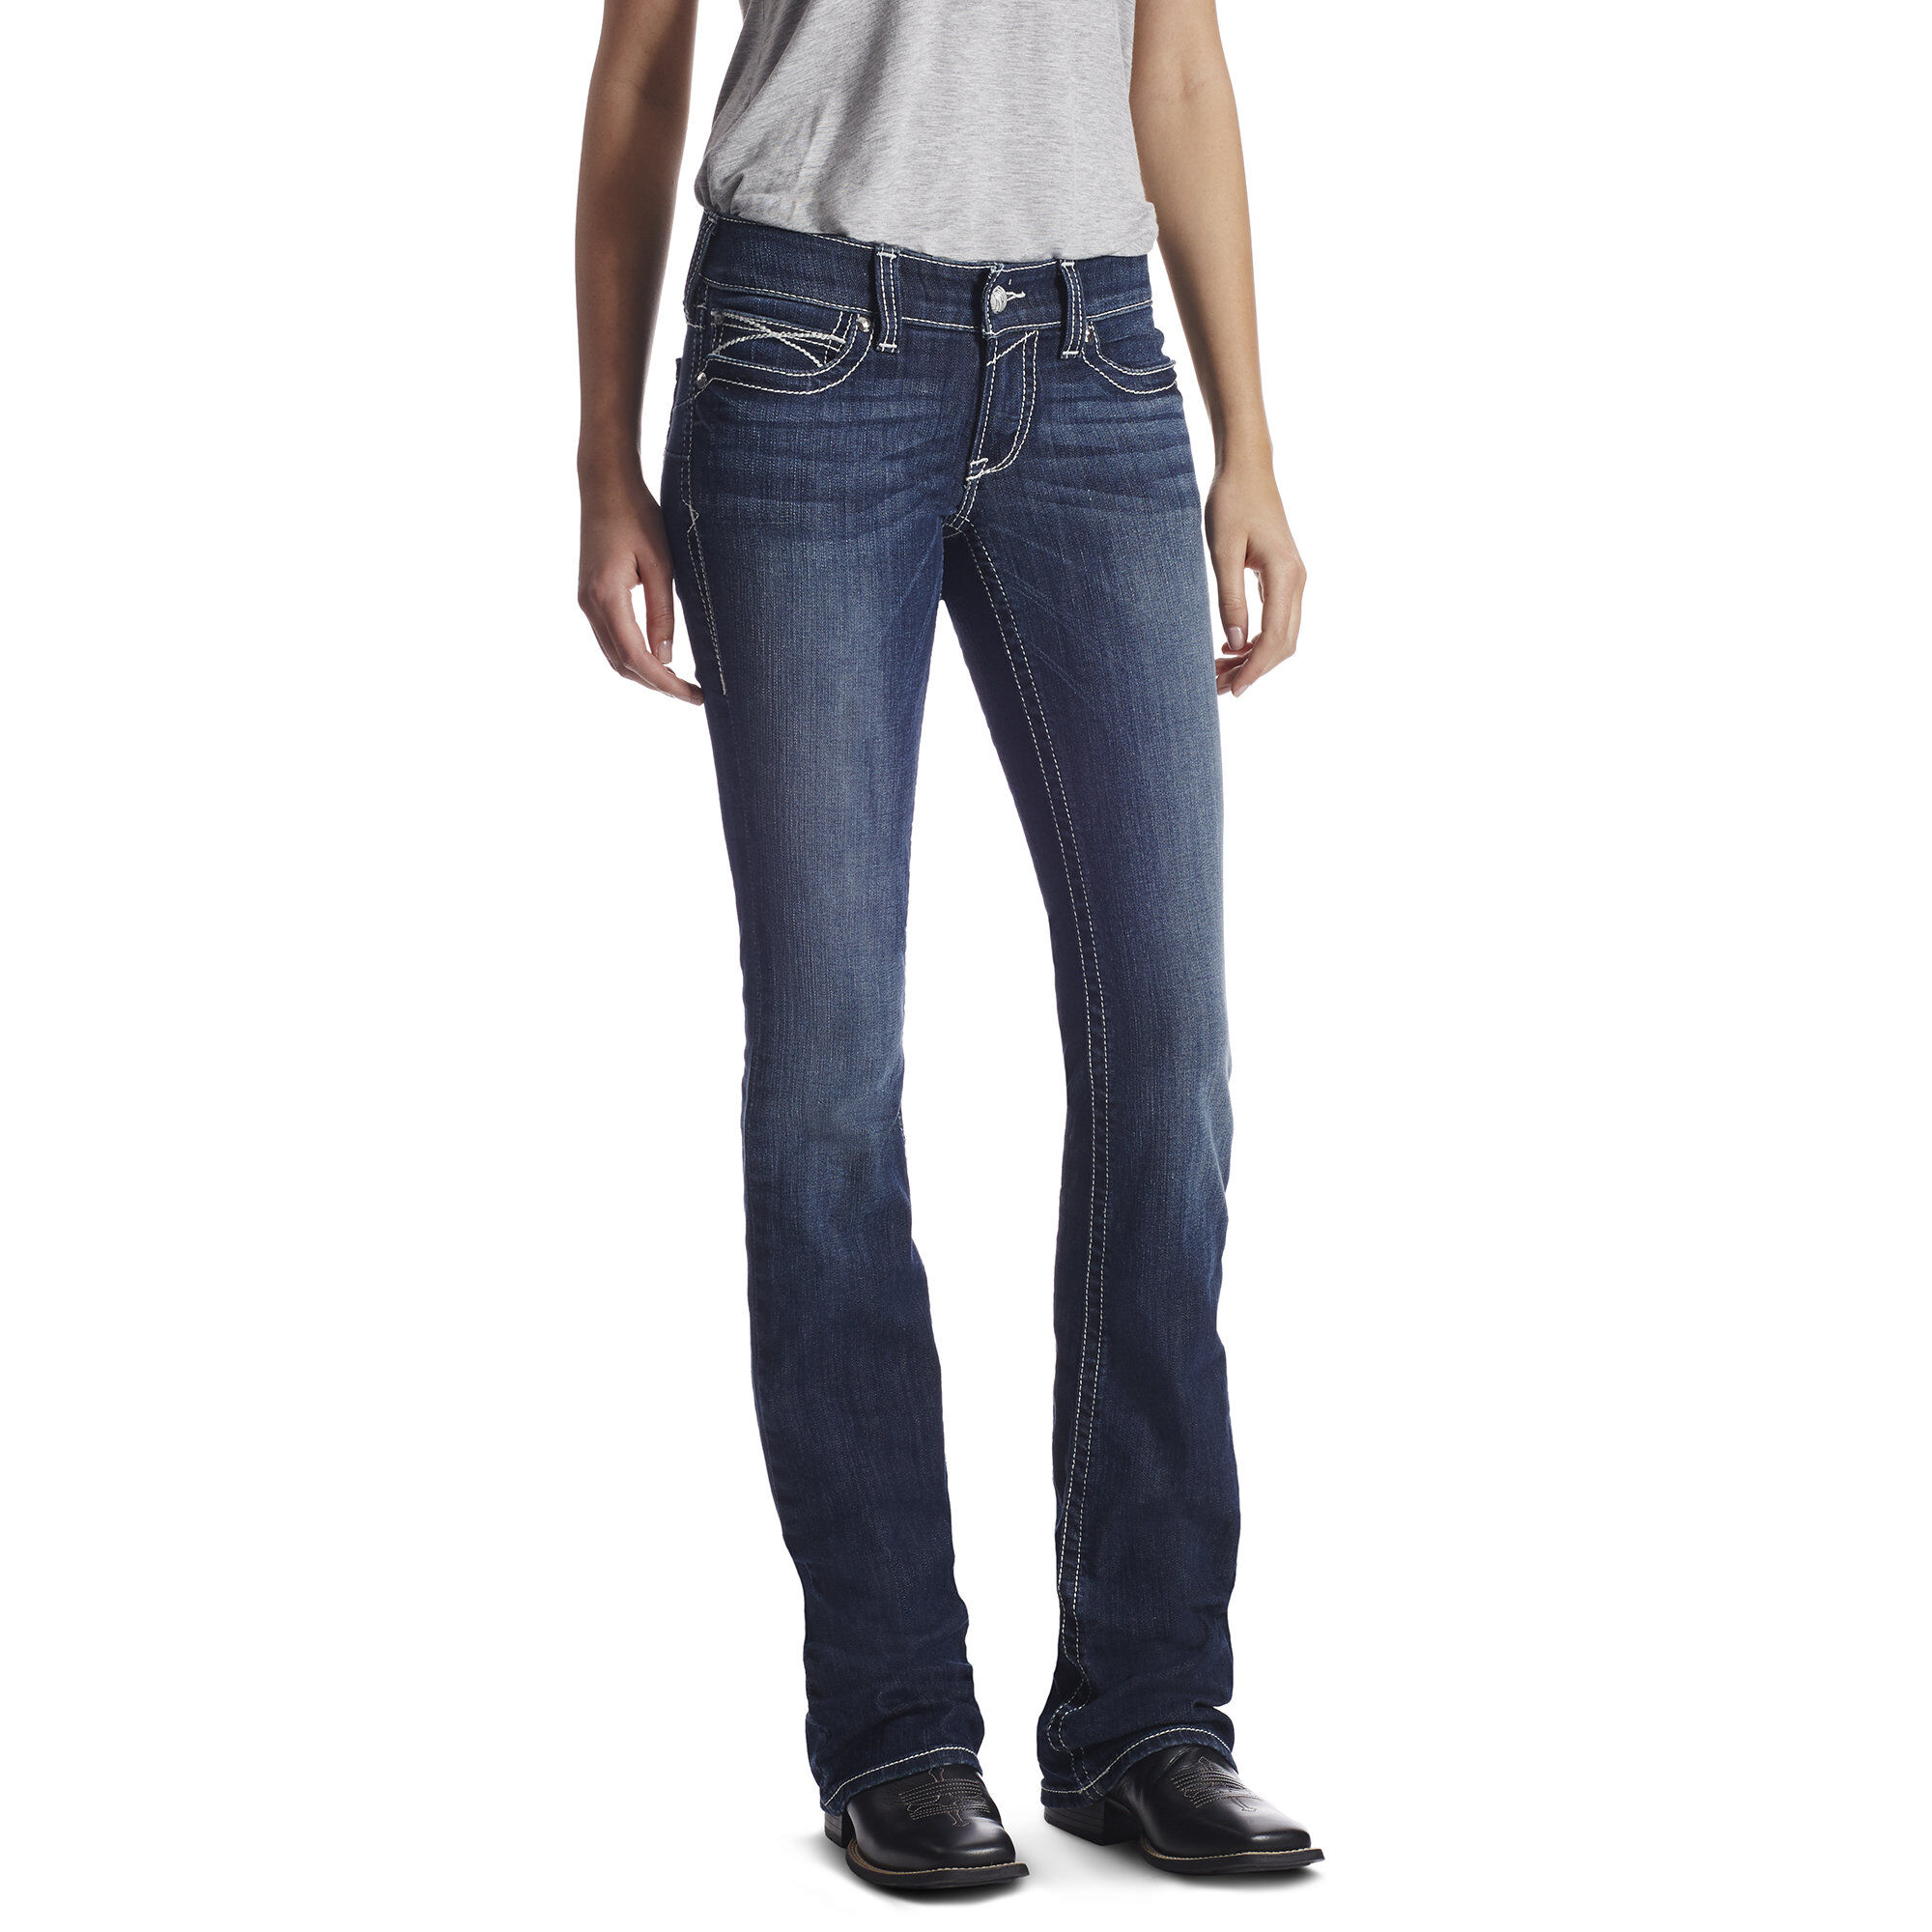 Ariat women's real mid rise bootcut whipstitch jeans